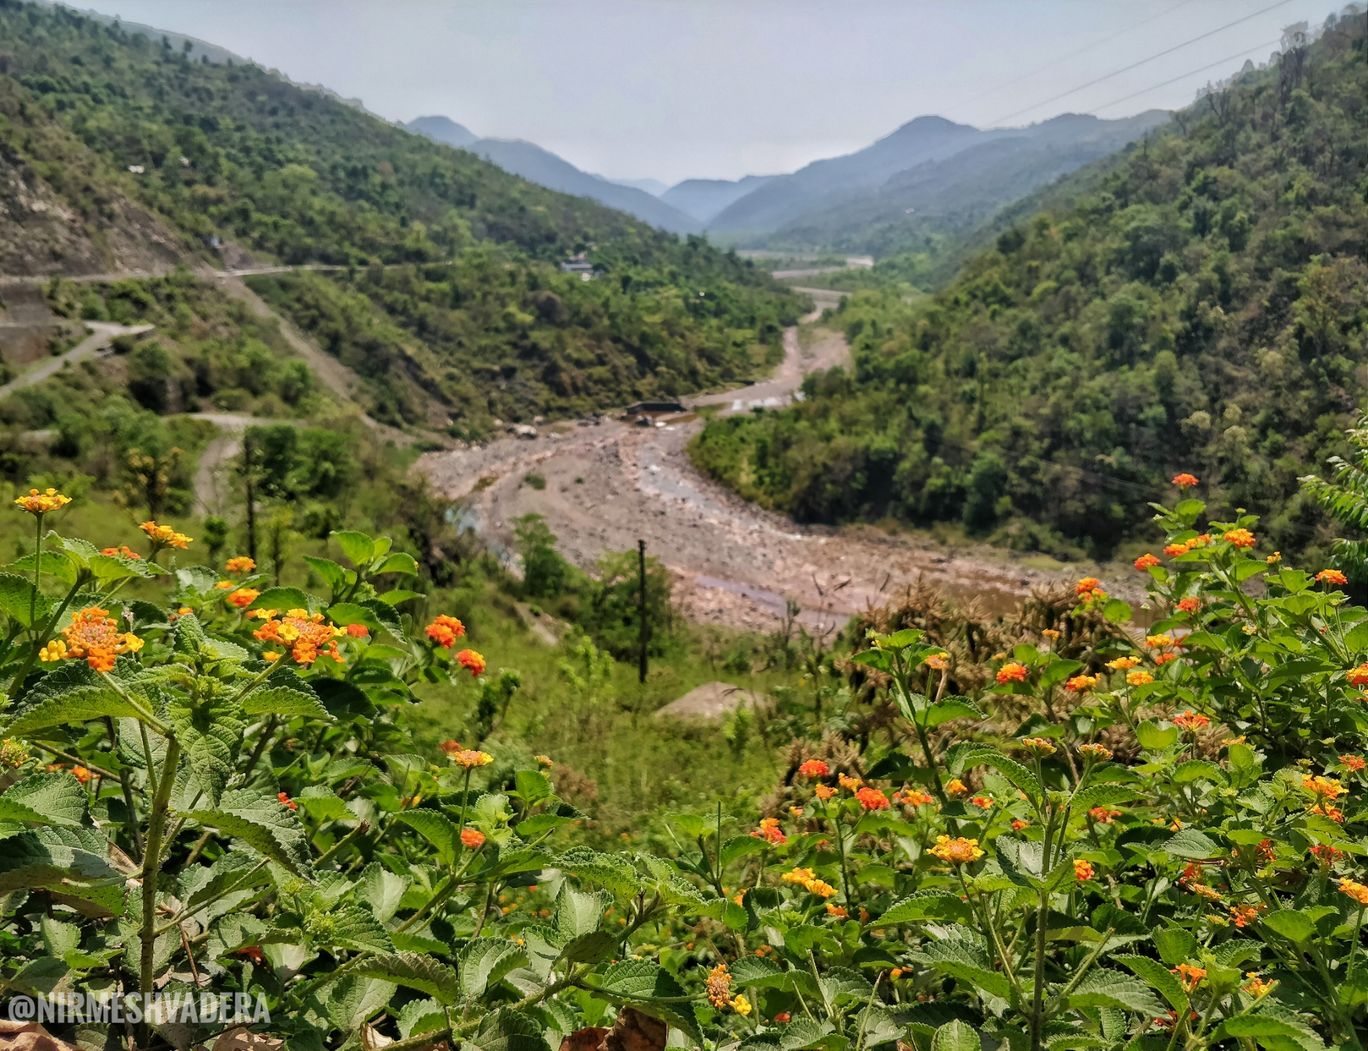 Photo of Himachal Pradesh By Nirmesh Vadera